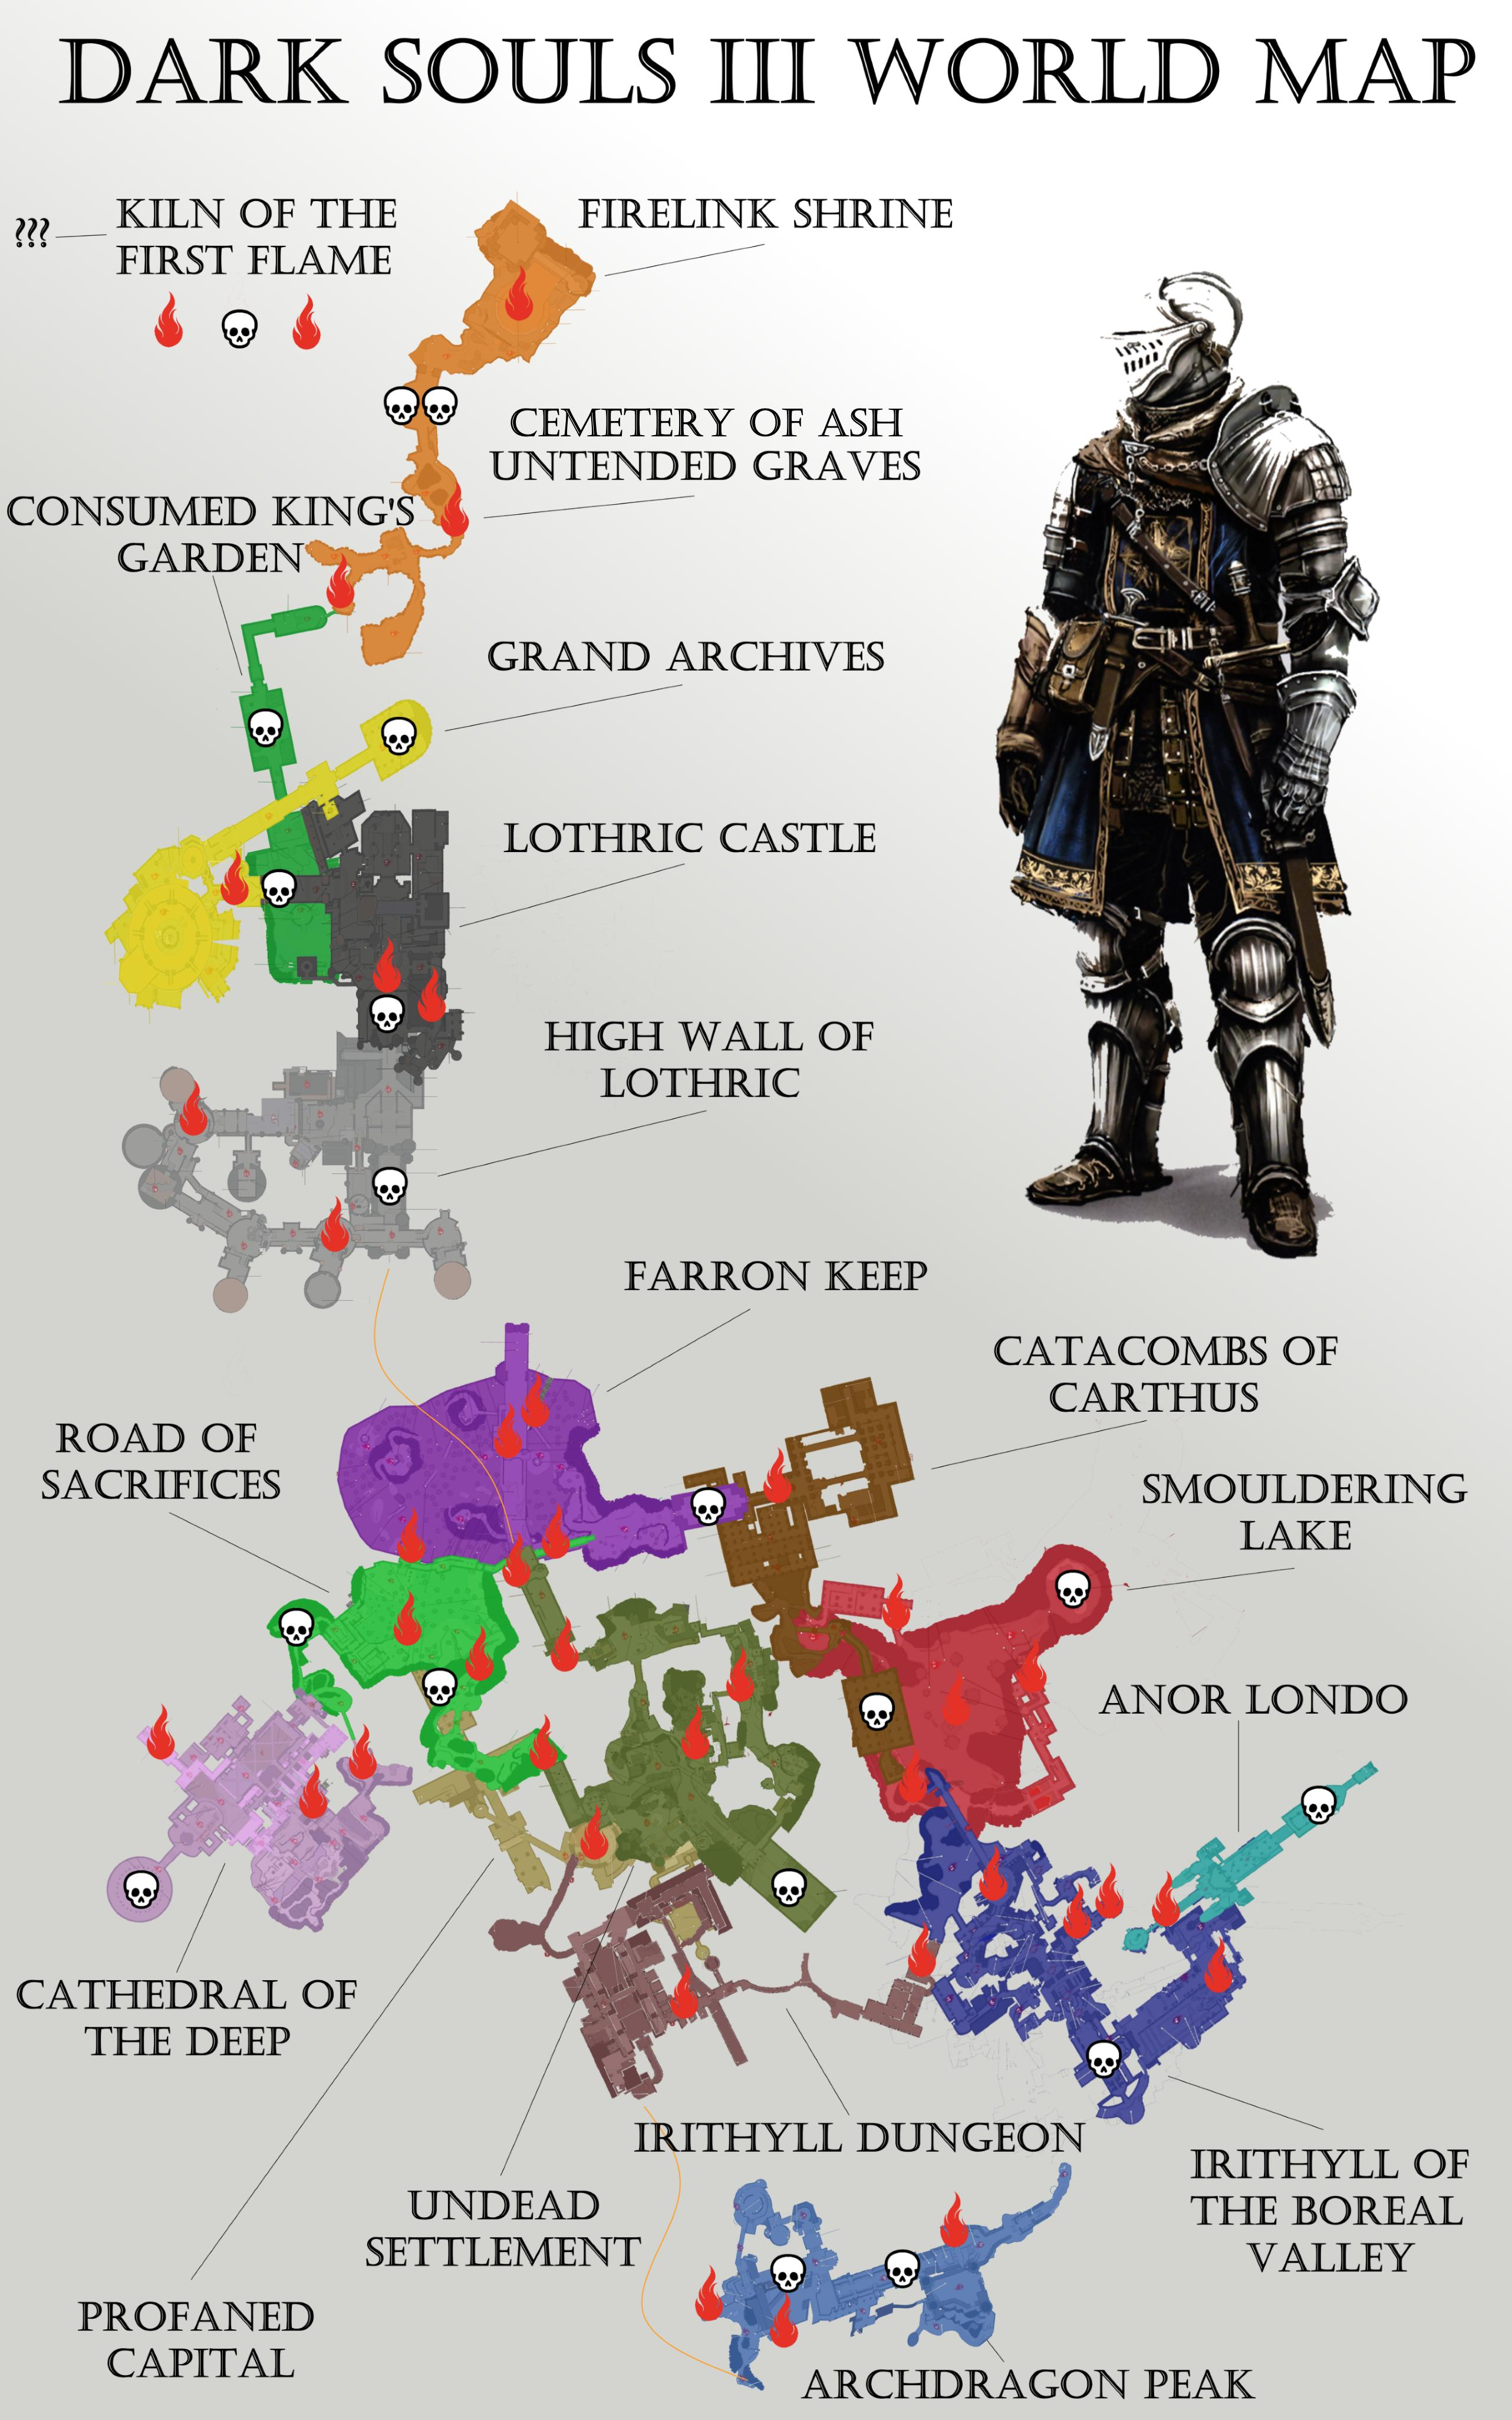 Dark Souls 2 World Map : souls, world, CAMPAIGN, QUESTS, Souls, Discussion, Steamforged, World, Valleduparnoticias.co